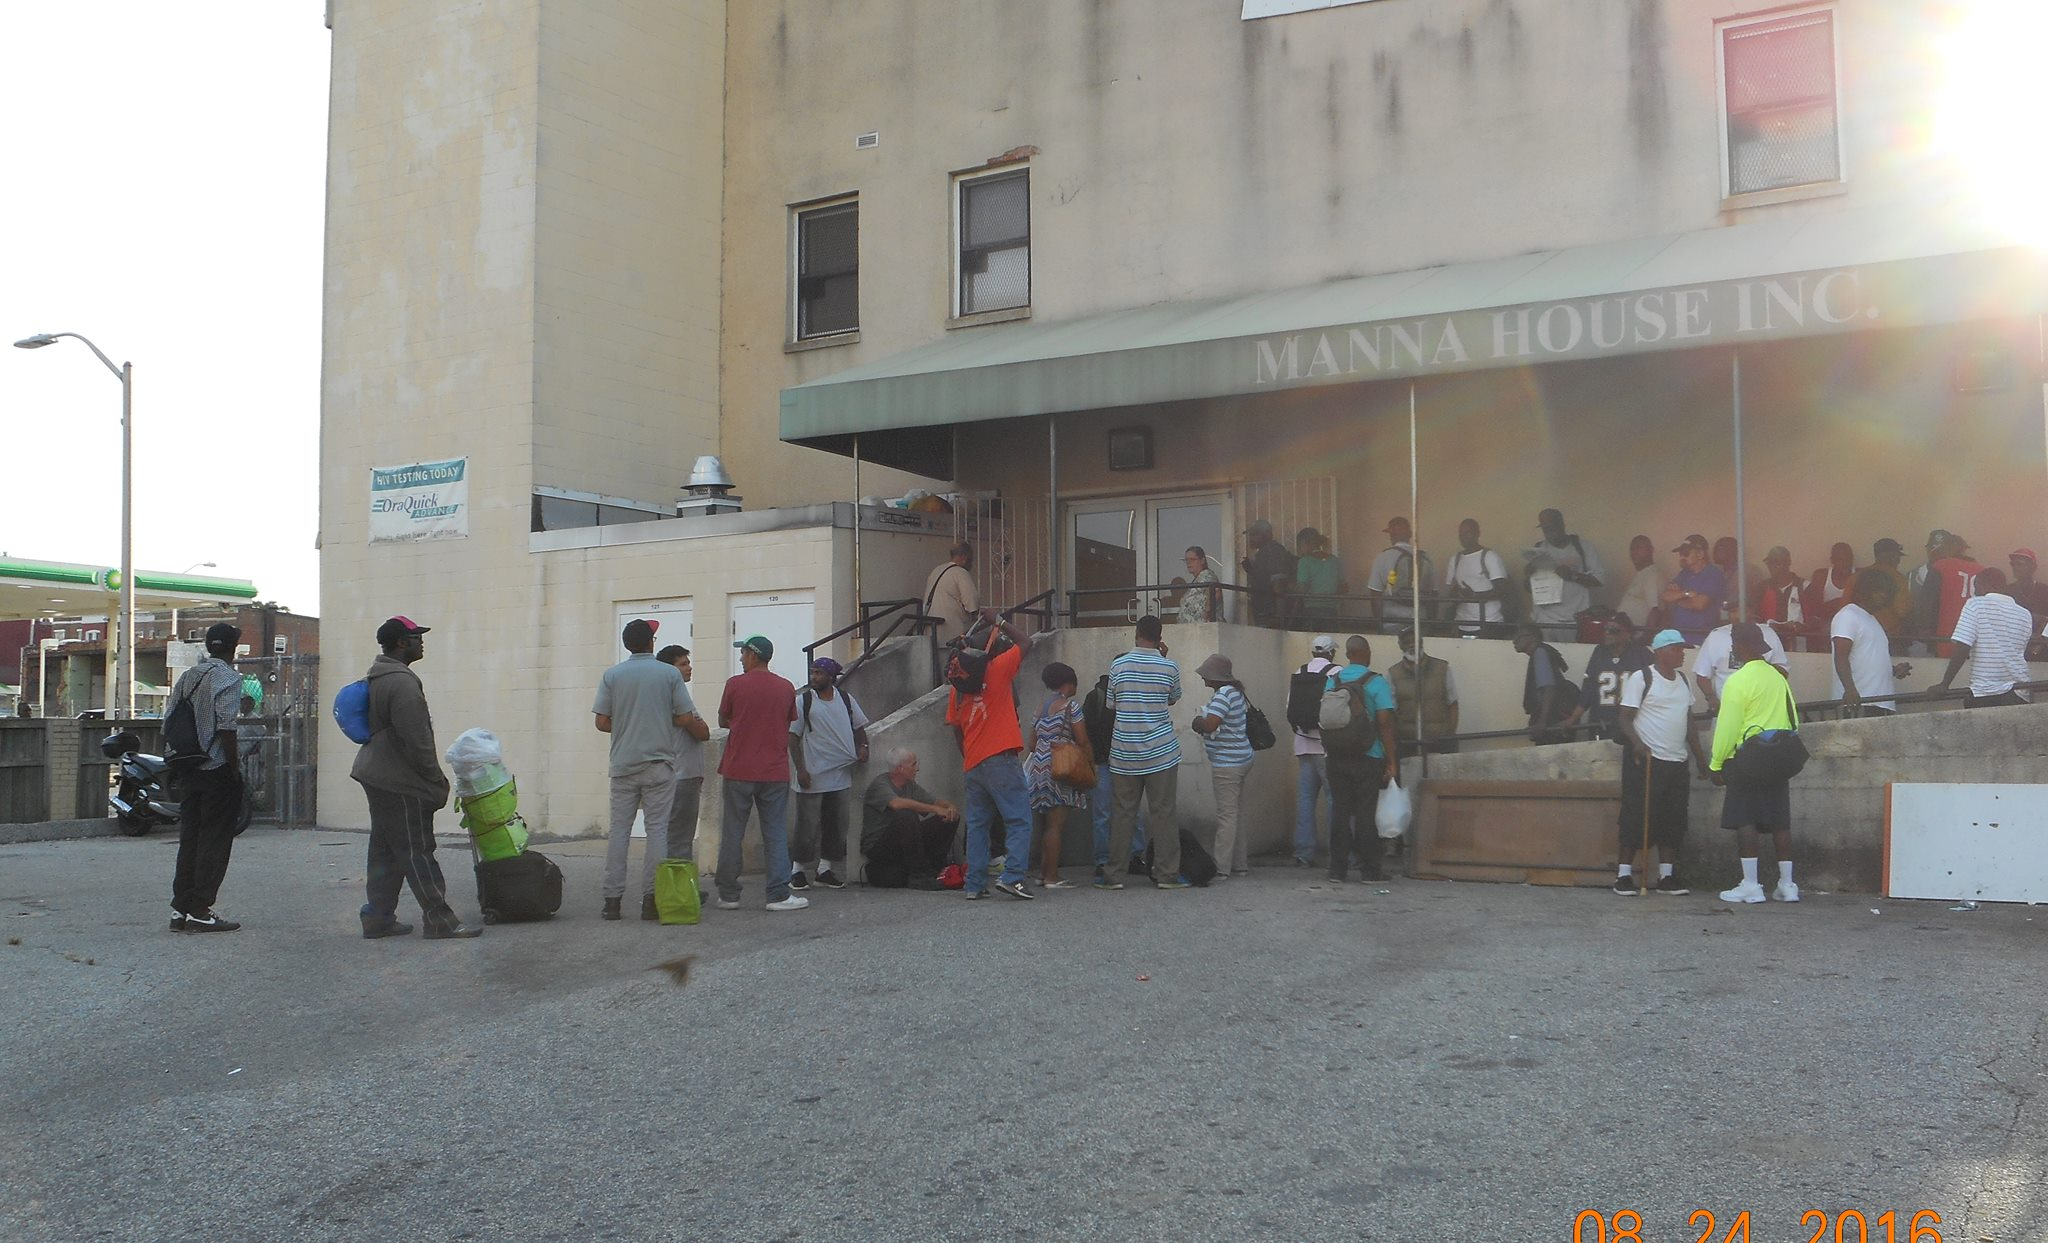 baltimore homeless shelters and services baltimore md homeless